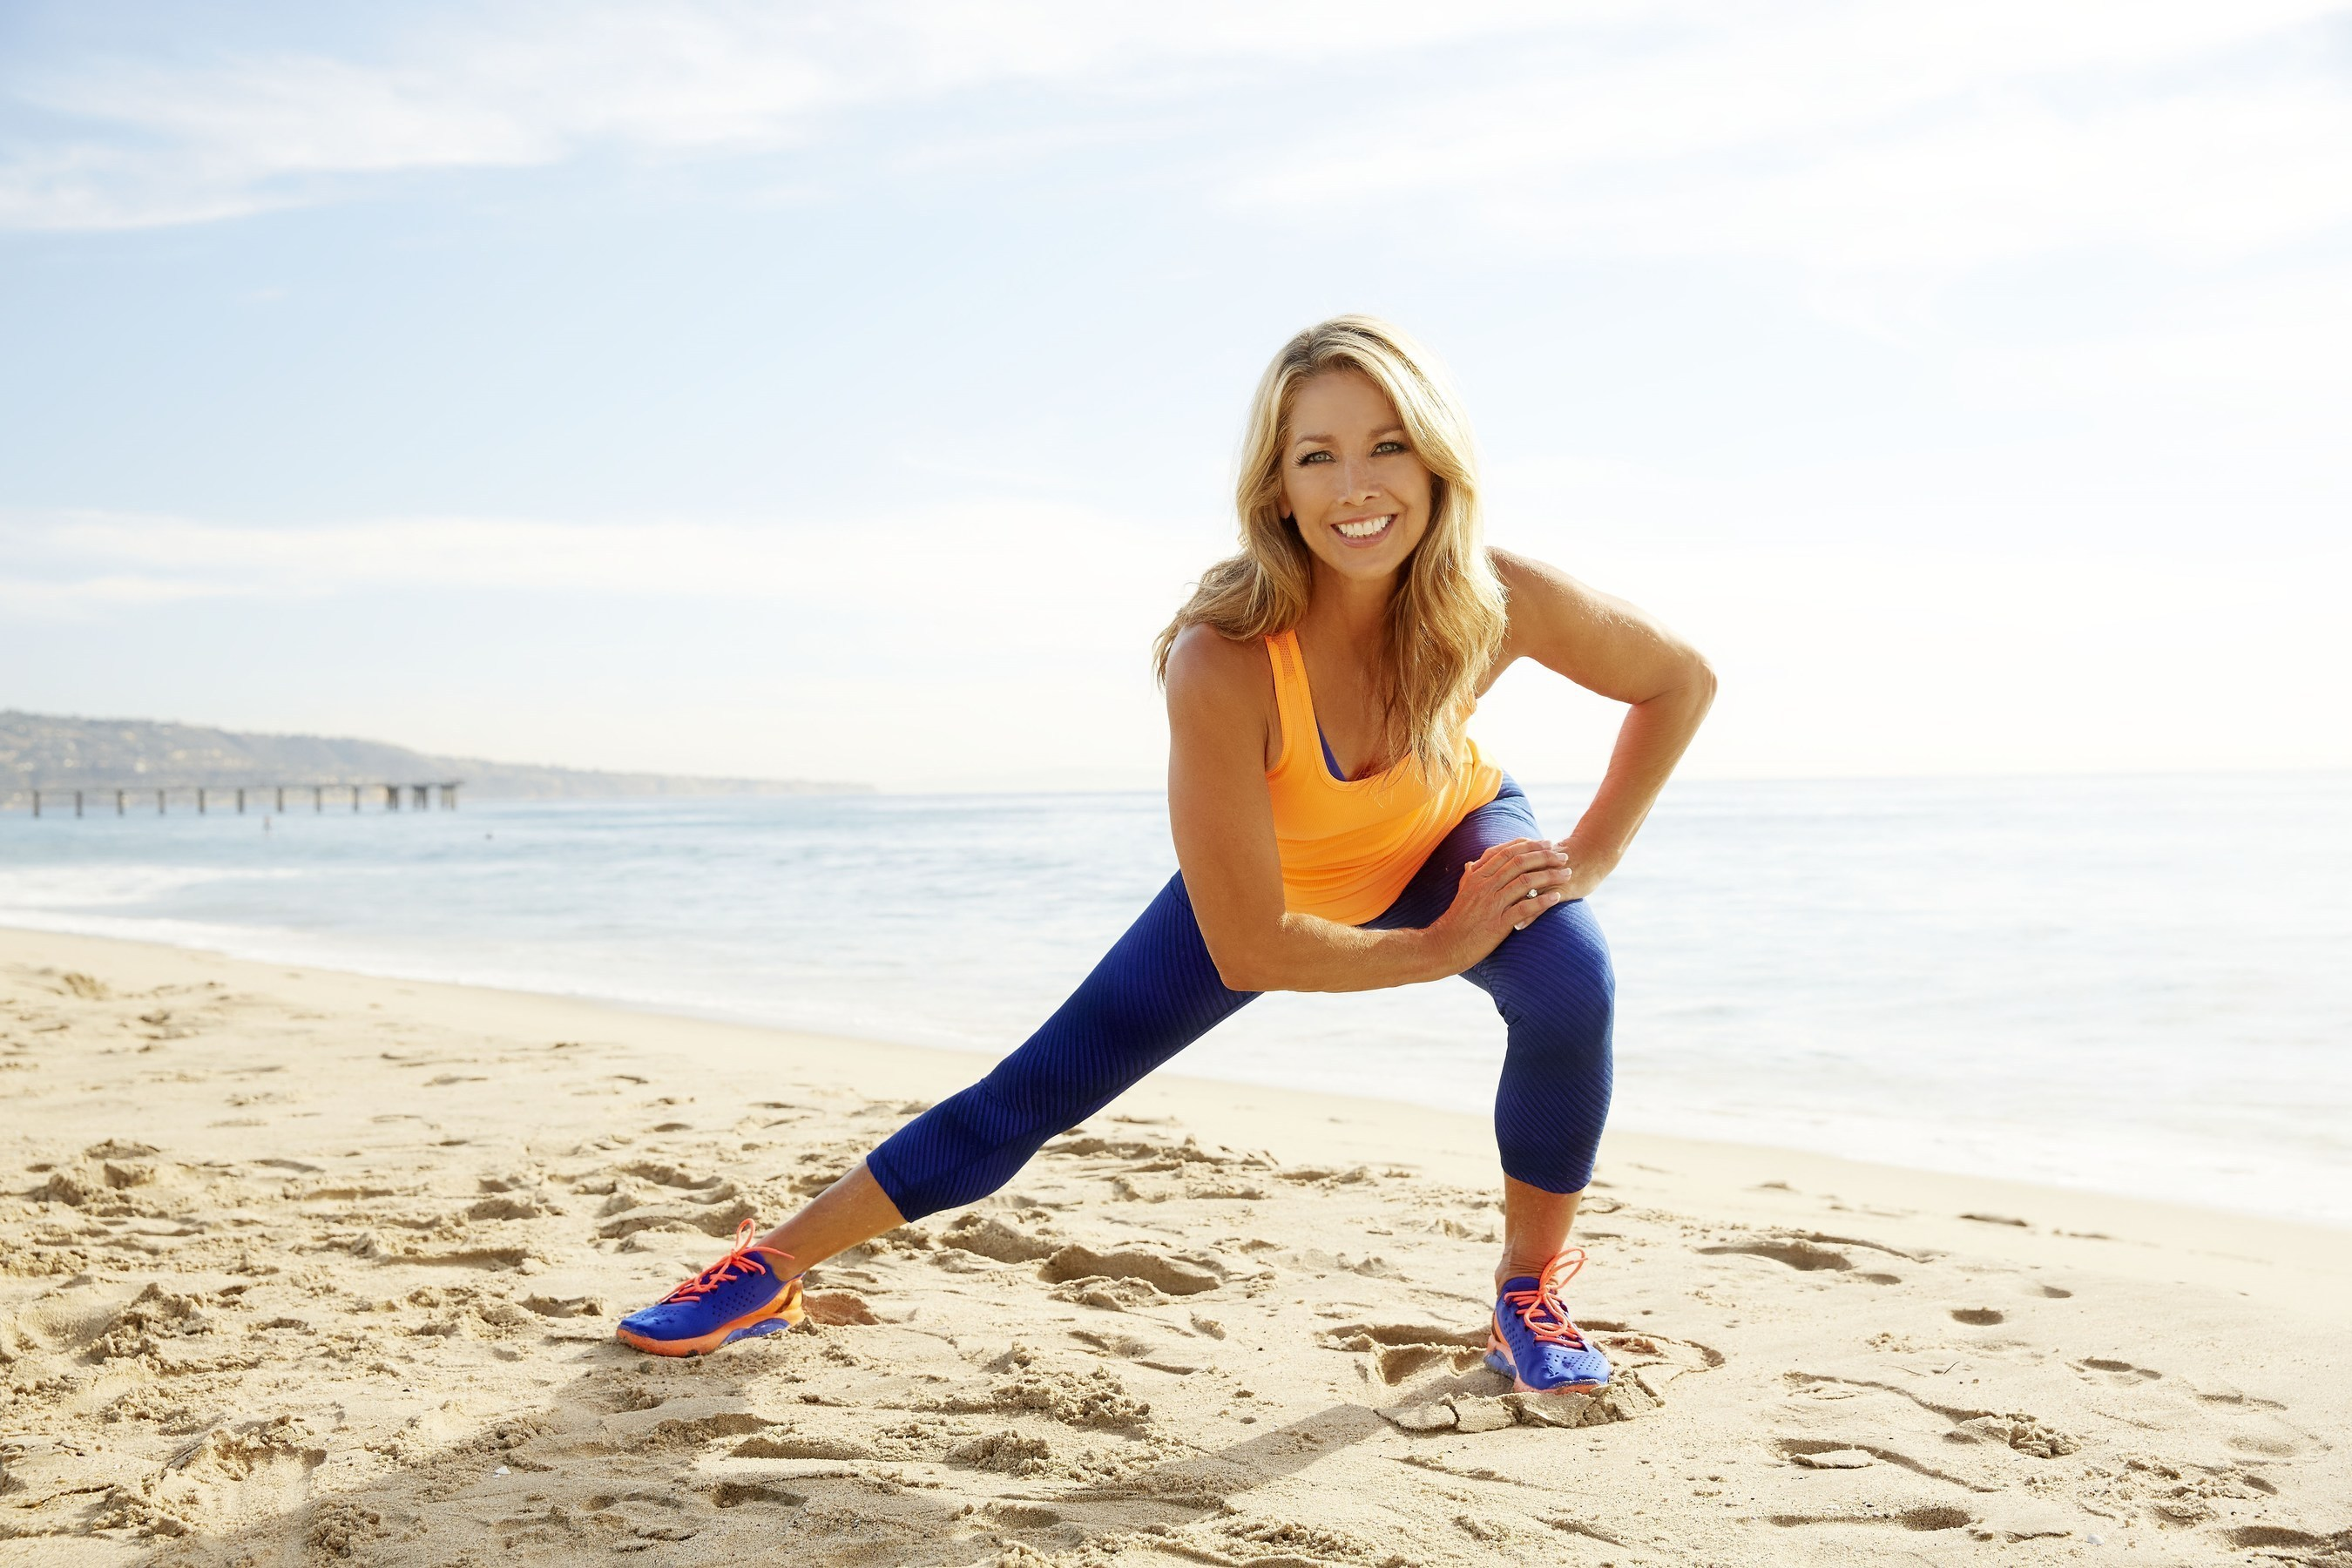 Fitness icon Denise Austin is introducing an all-new, 10-week health and fitness plan that will give people the tools they need to achieve their goals. Denise Austin's 10 Week, 360 Degree Plan will combine everything Austin knows about exercise, nutrition and motivation in one place for the first time ever through all-new video content. The program launches on Jan. 5, 2015.